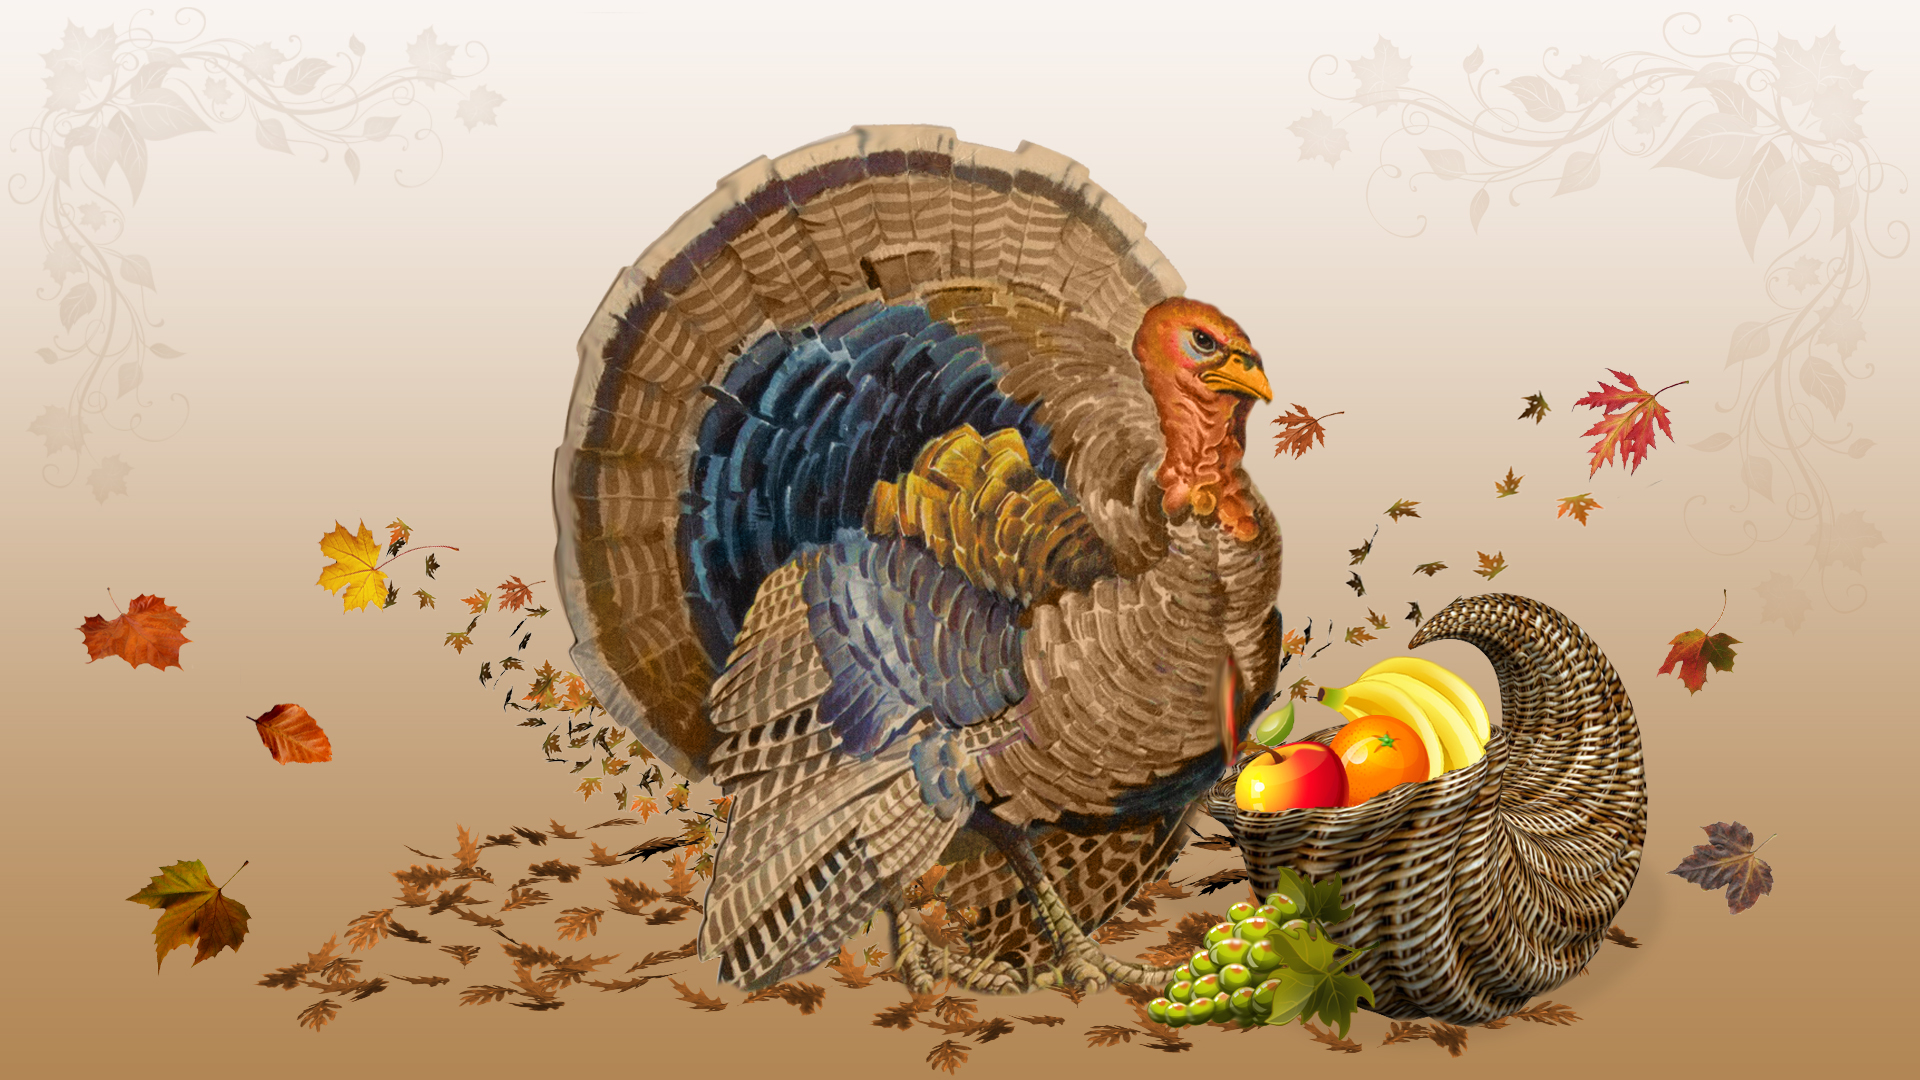 happy thanksgivinghd wallpapers - photo #30